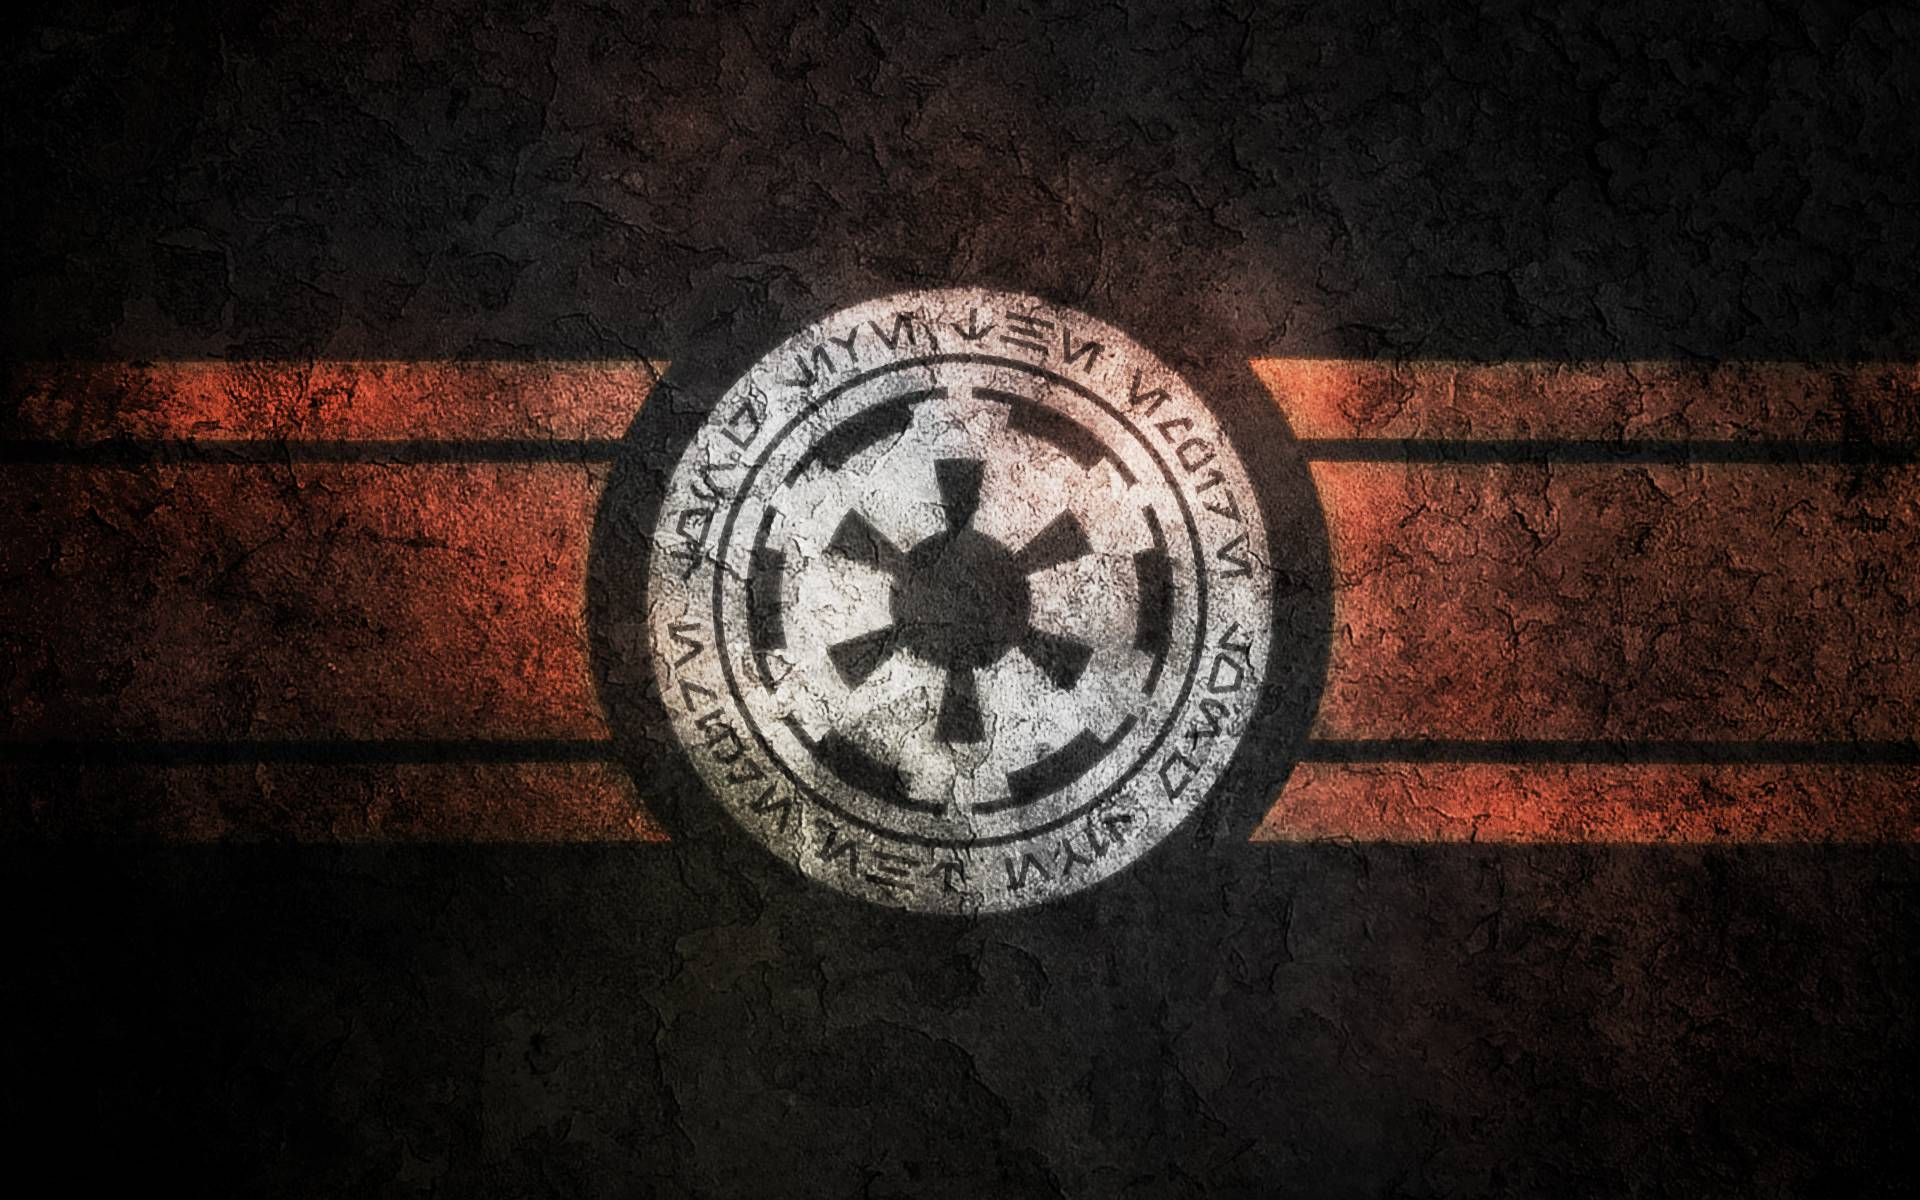 Republic Star Wars Phone Wallpapers Top Free Republic Star Wars Phone Backgrounds Wallpaperaccess